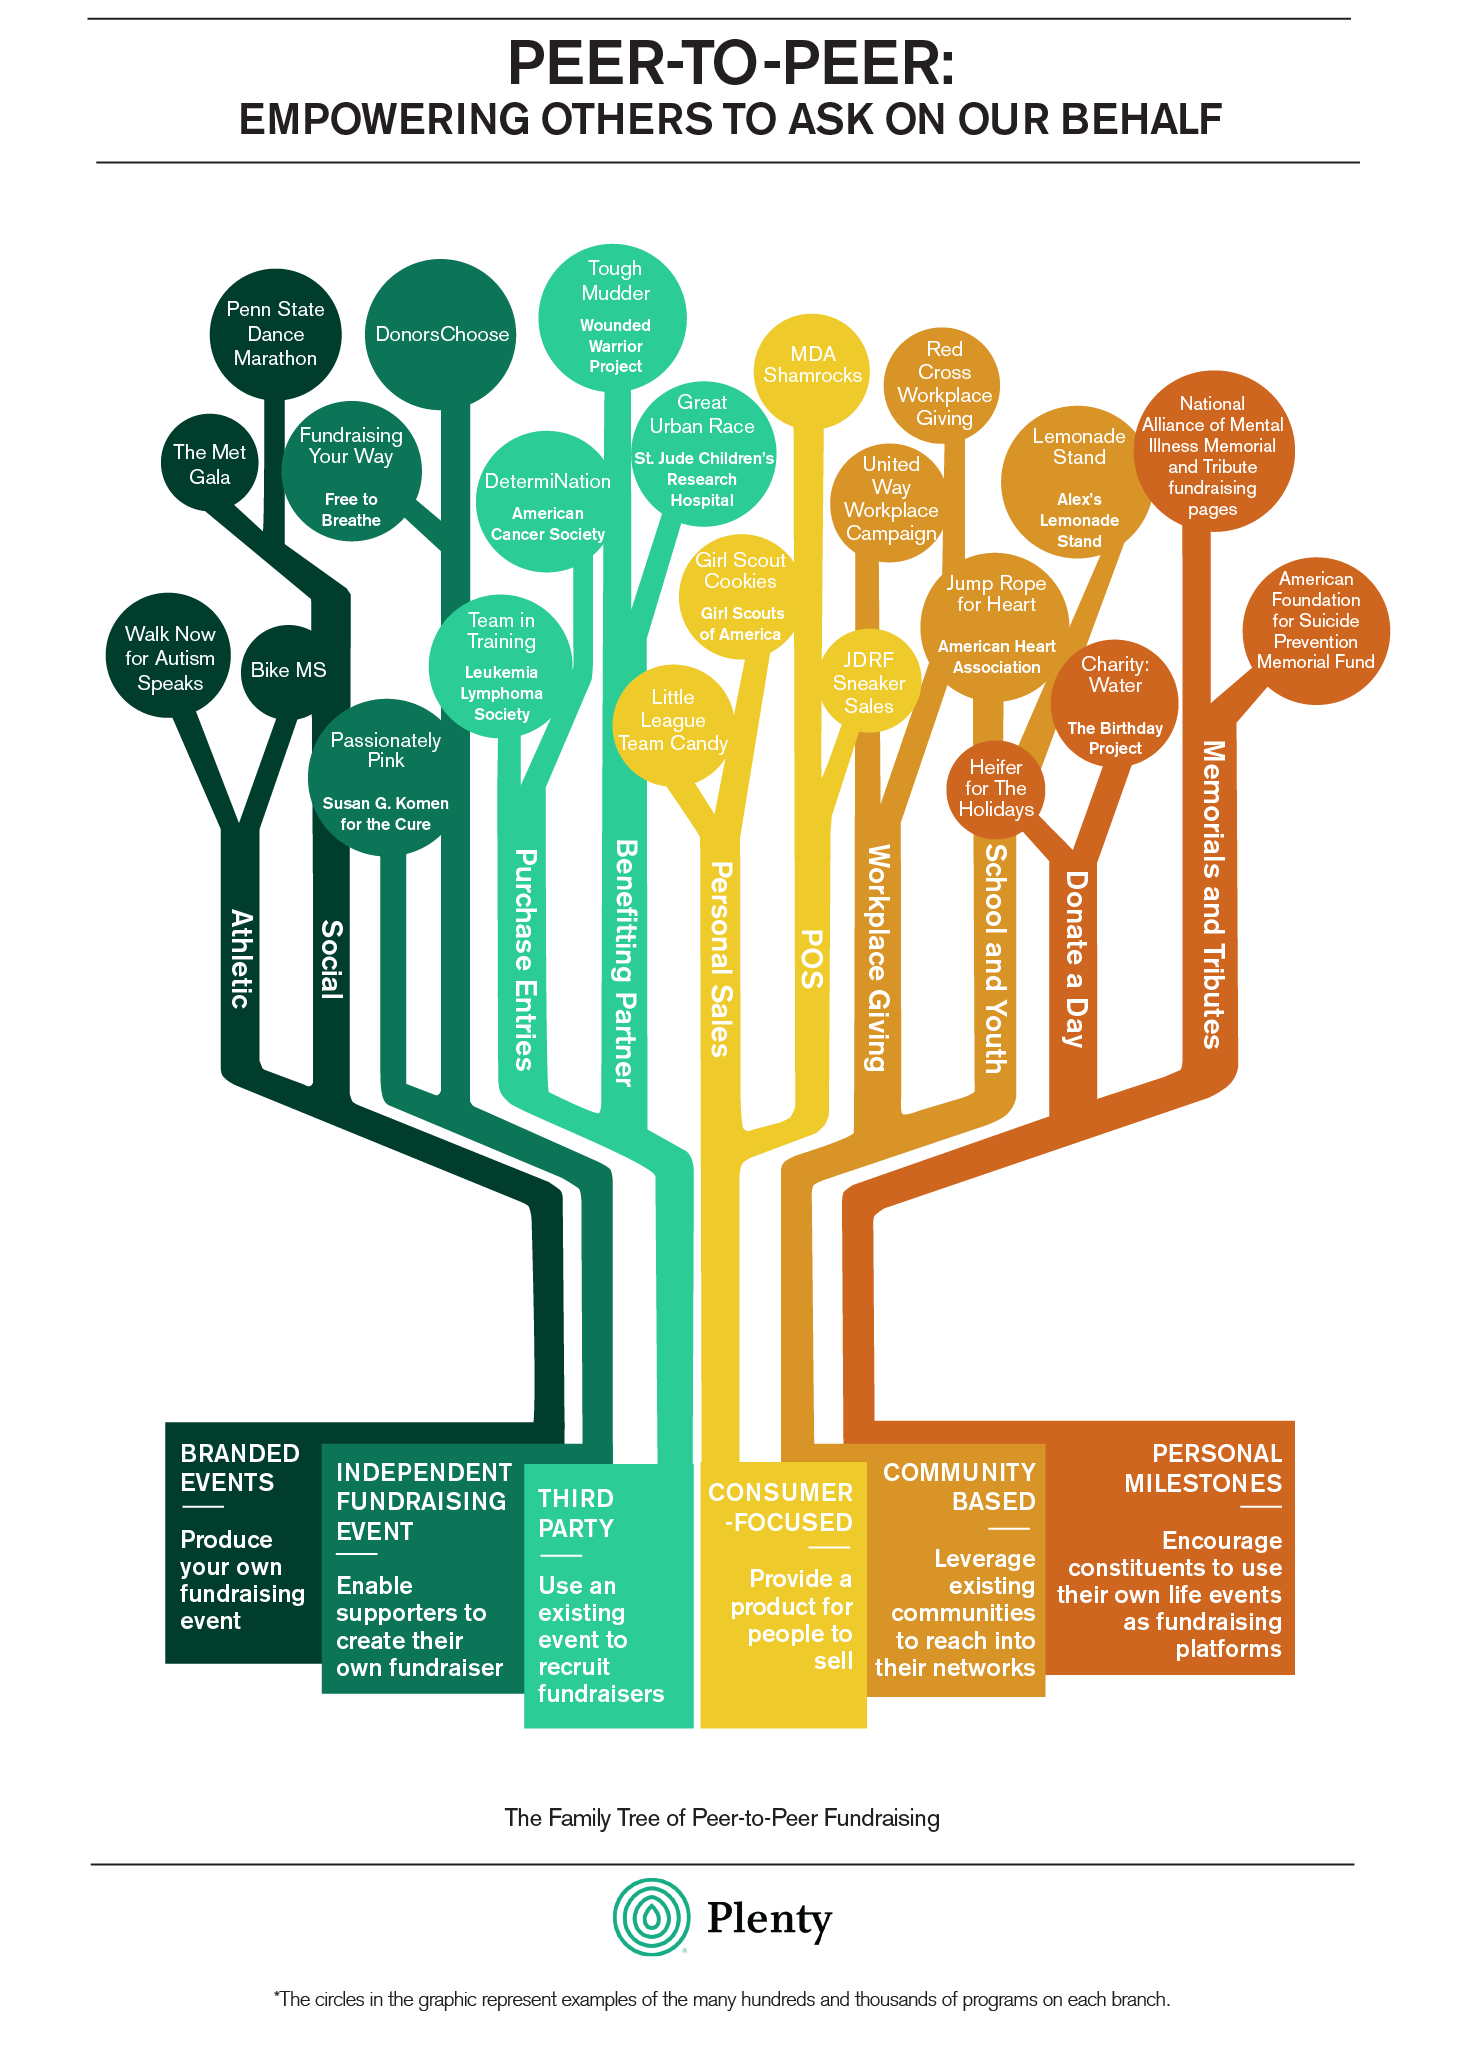 The Peer to Peer Family Tree shows a number of examples to explain what peer to peer fundraising is and how it works.